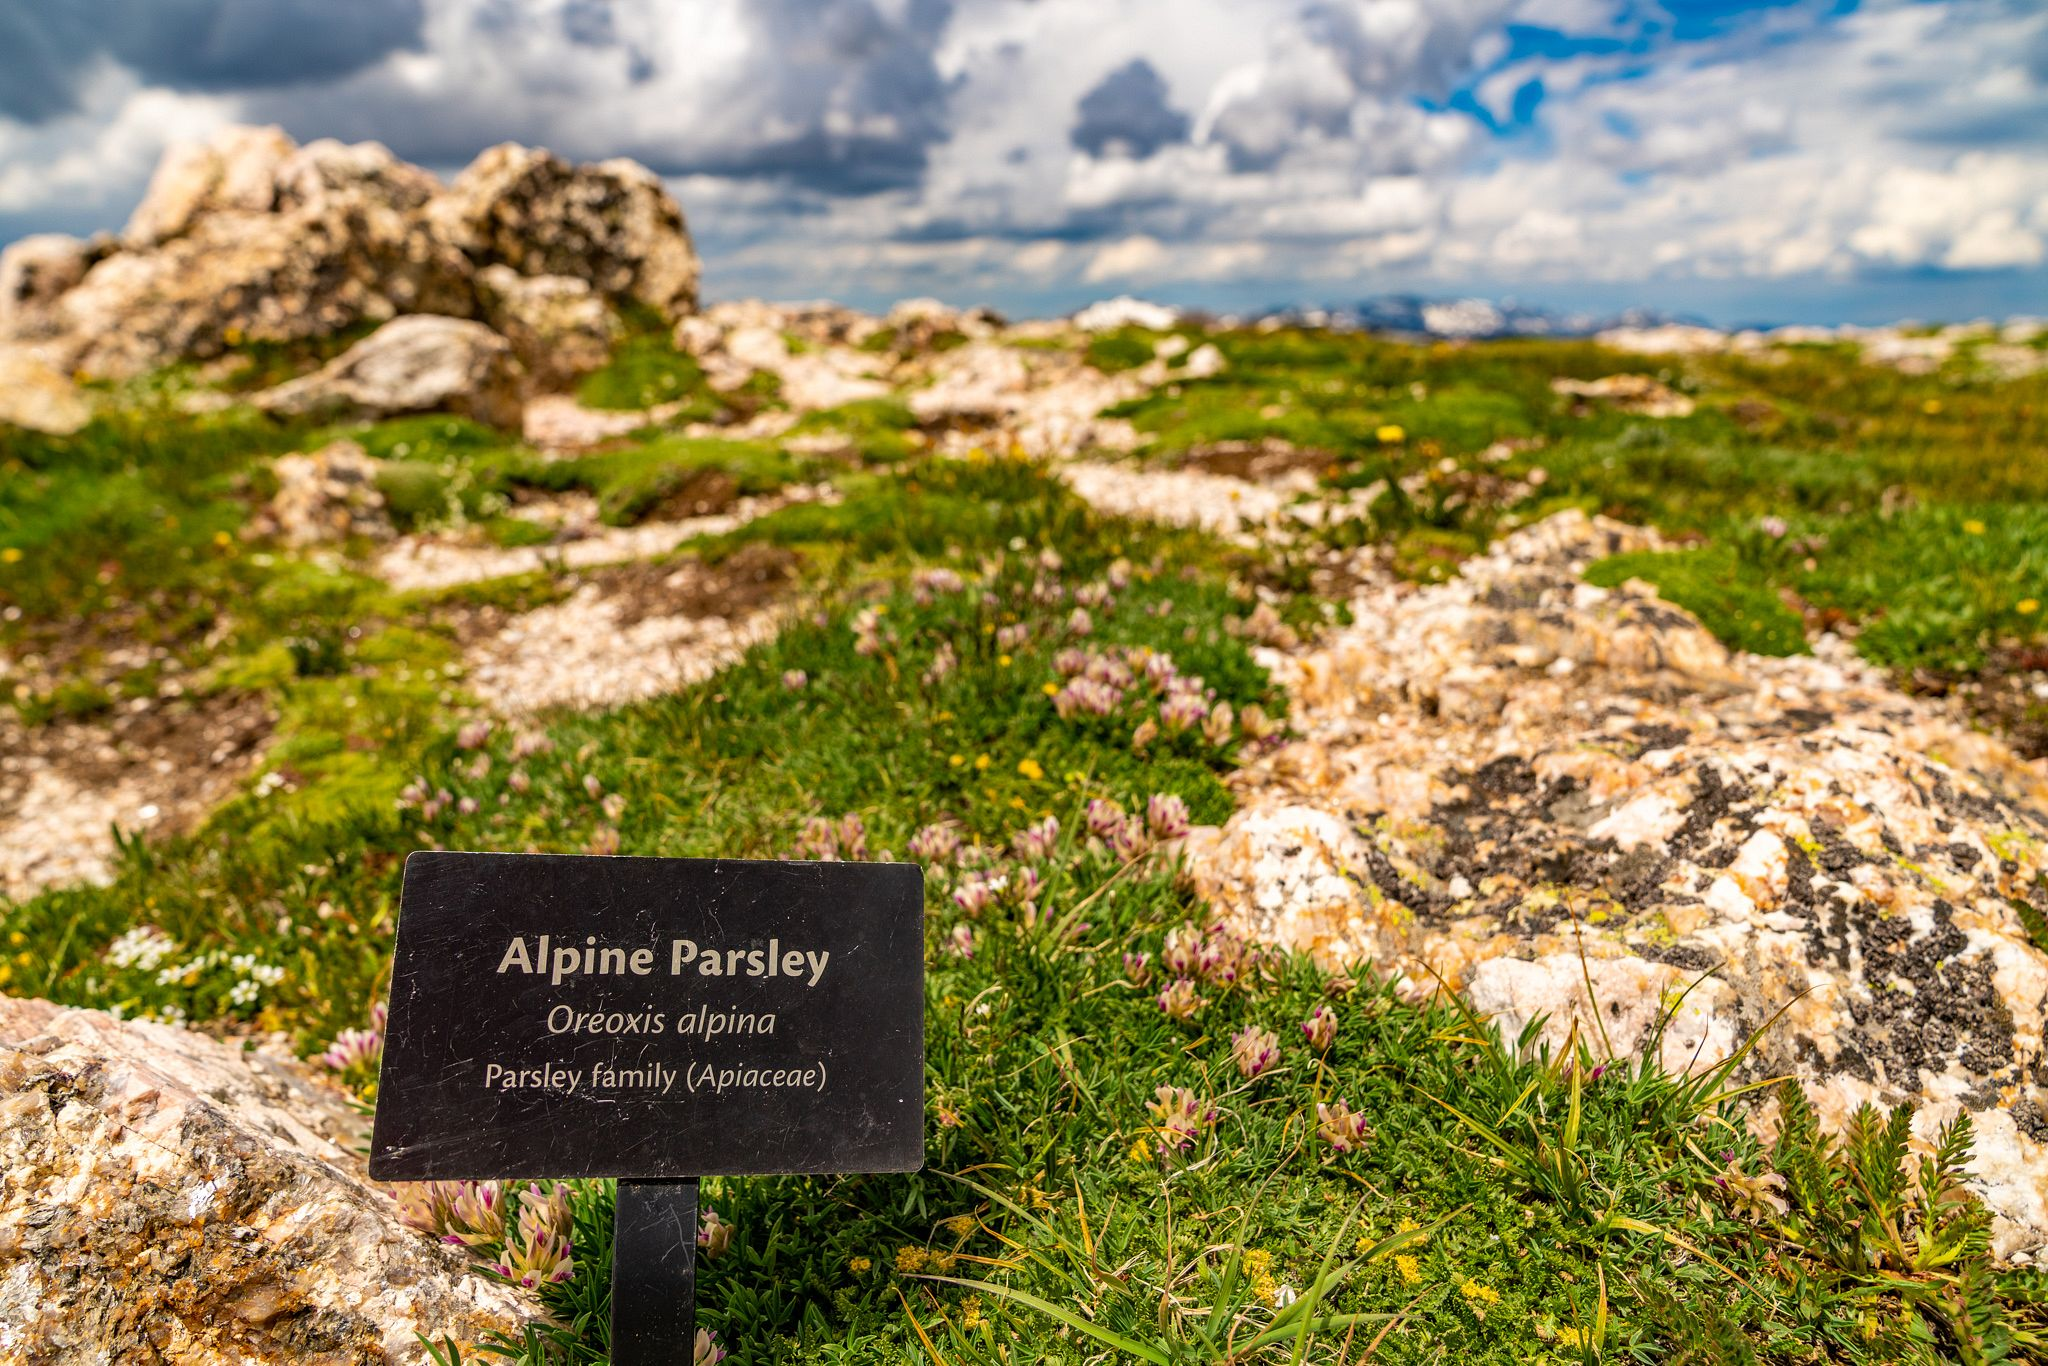 Alpine Parsley